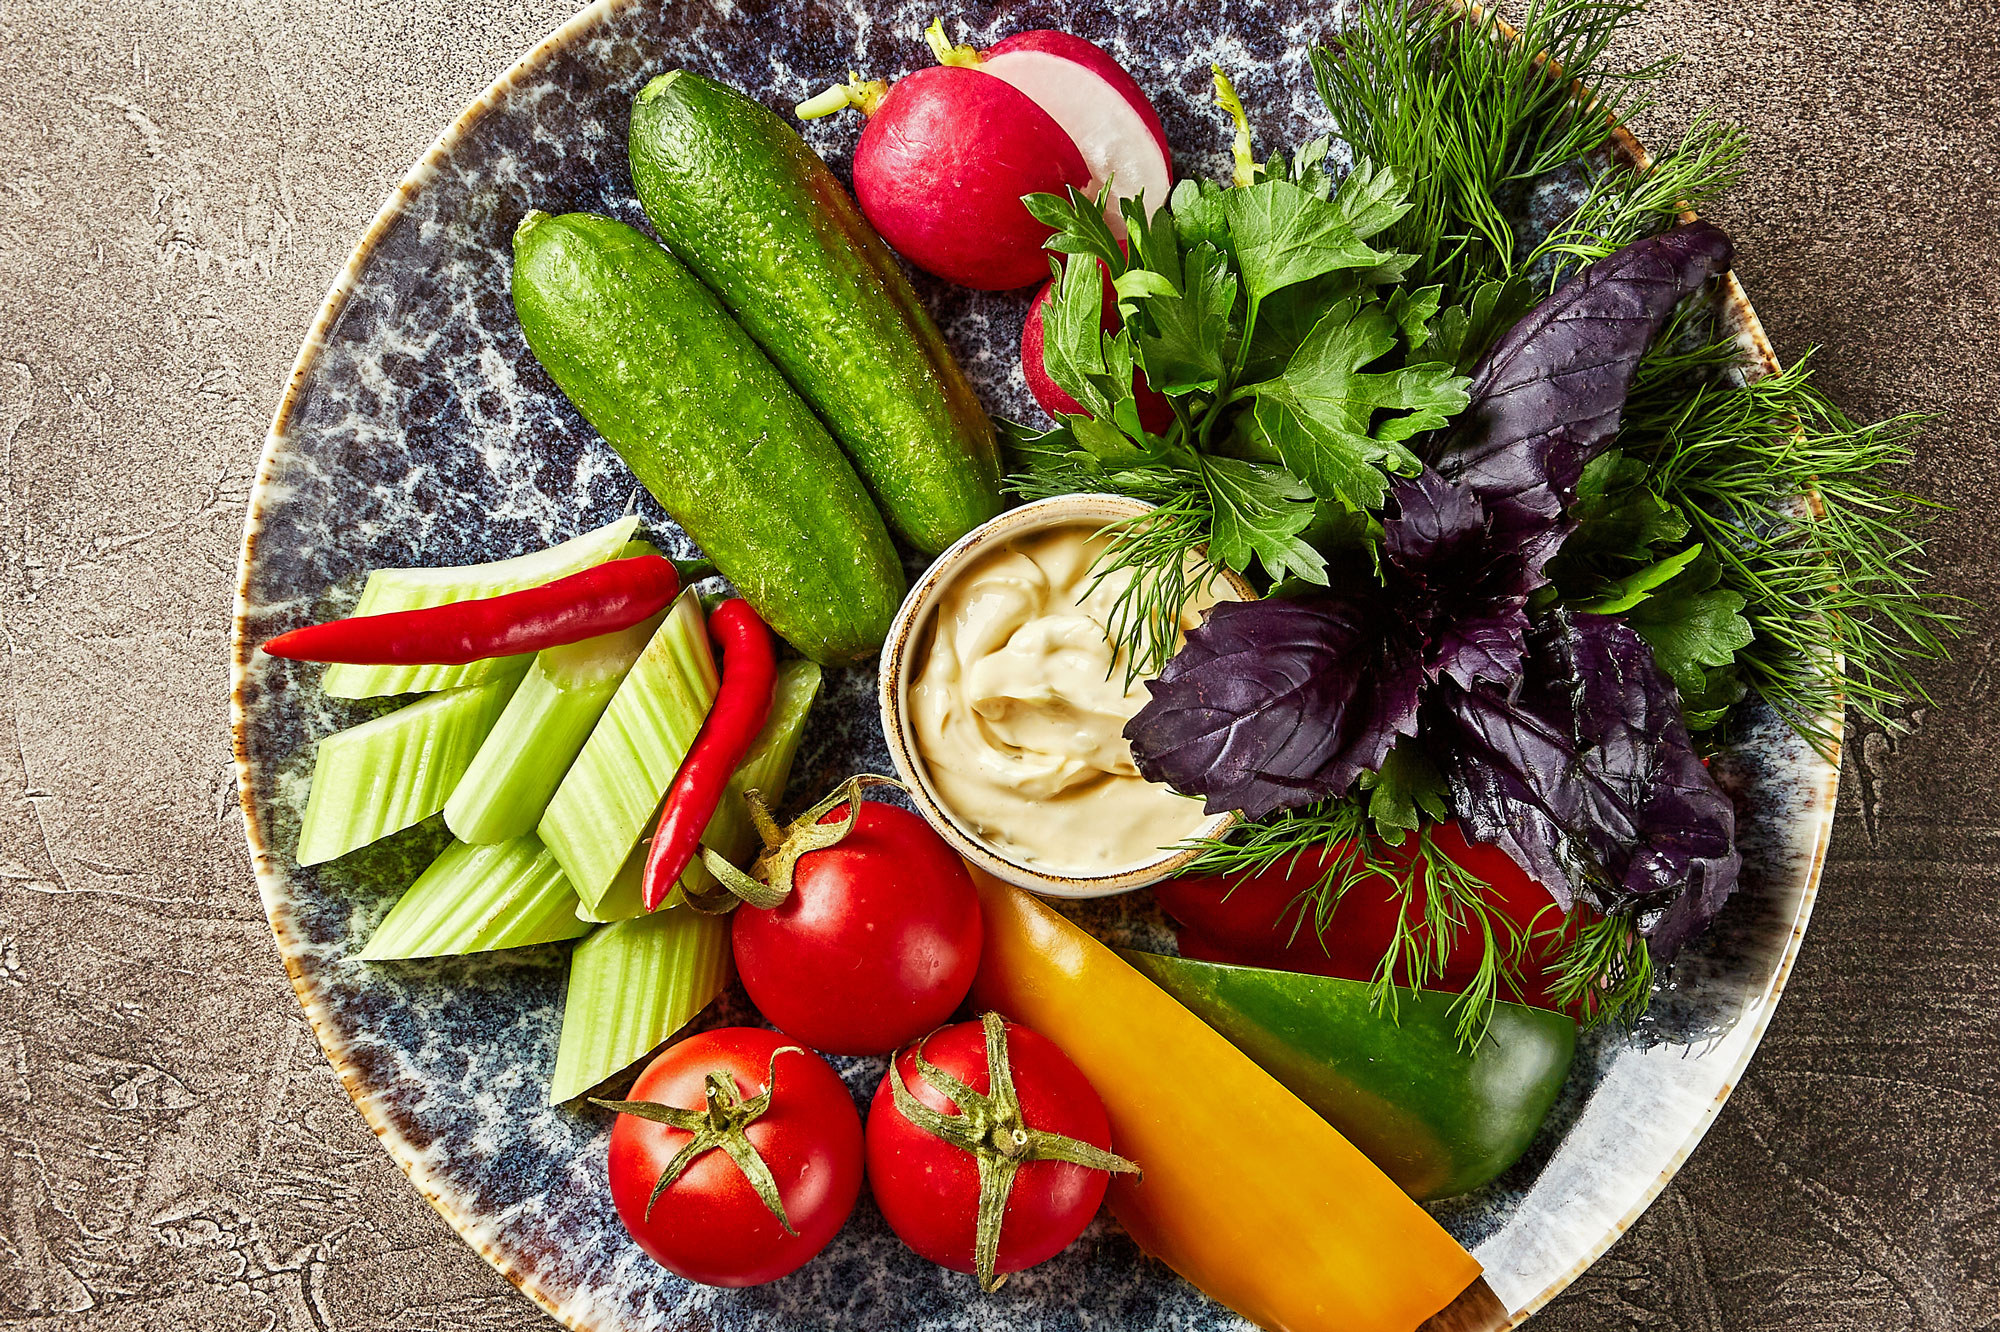 Plate with tomatoes, sweet bell pepper, radish and celery, parsley, dill, cilantro, green onion, red basil on brown background, top view